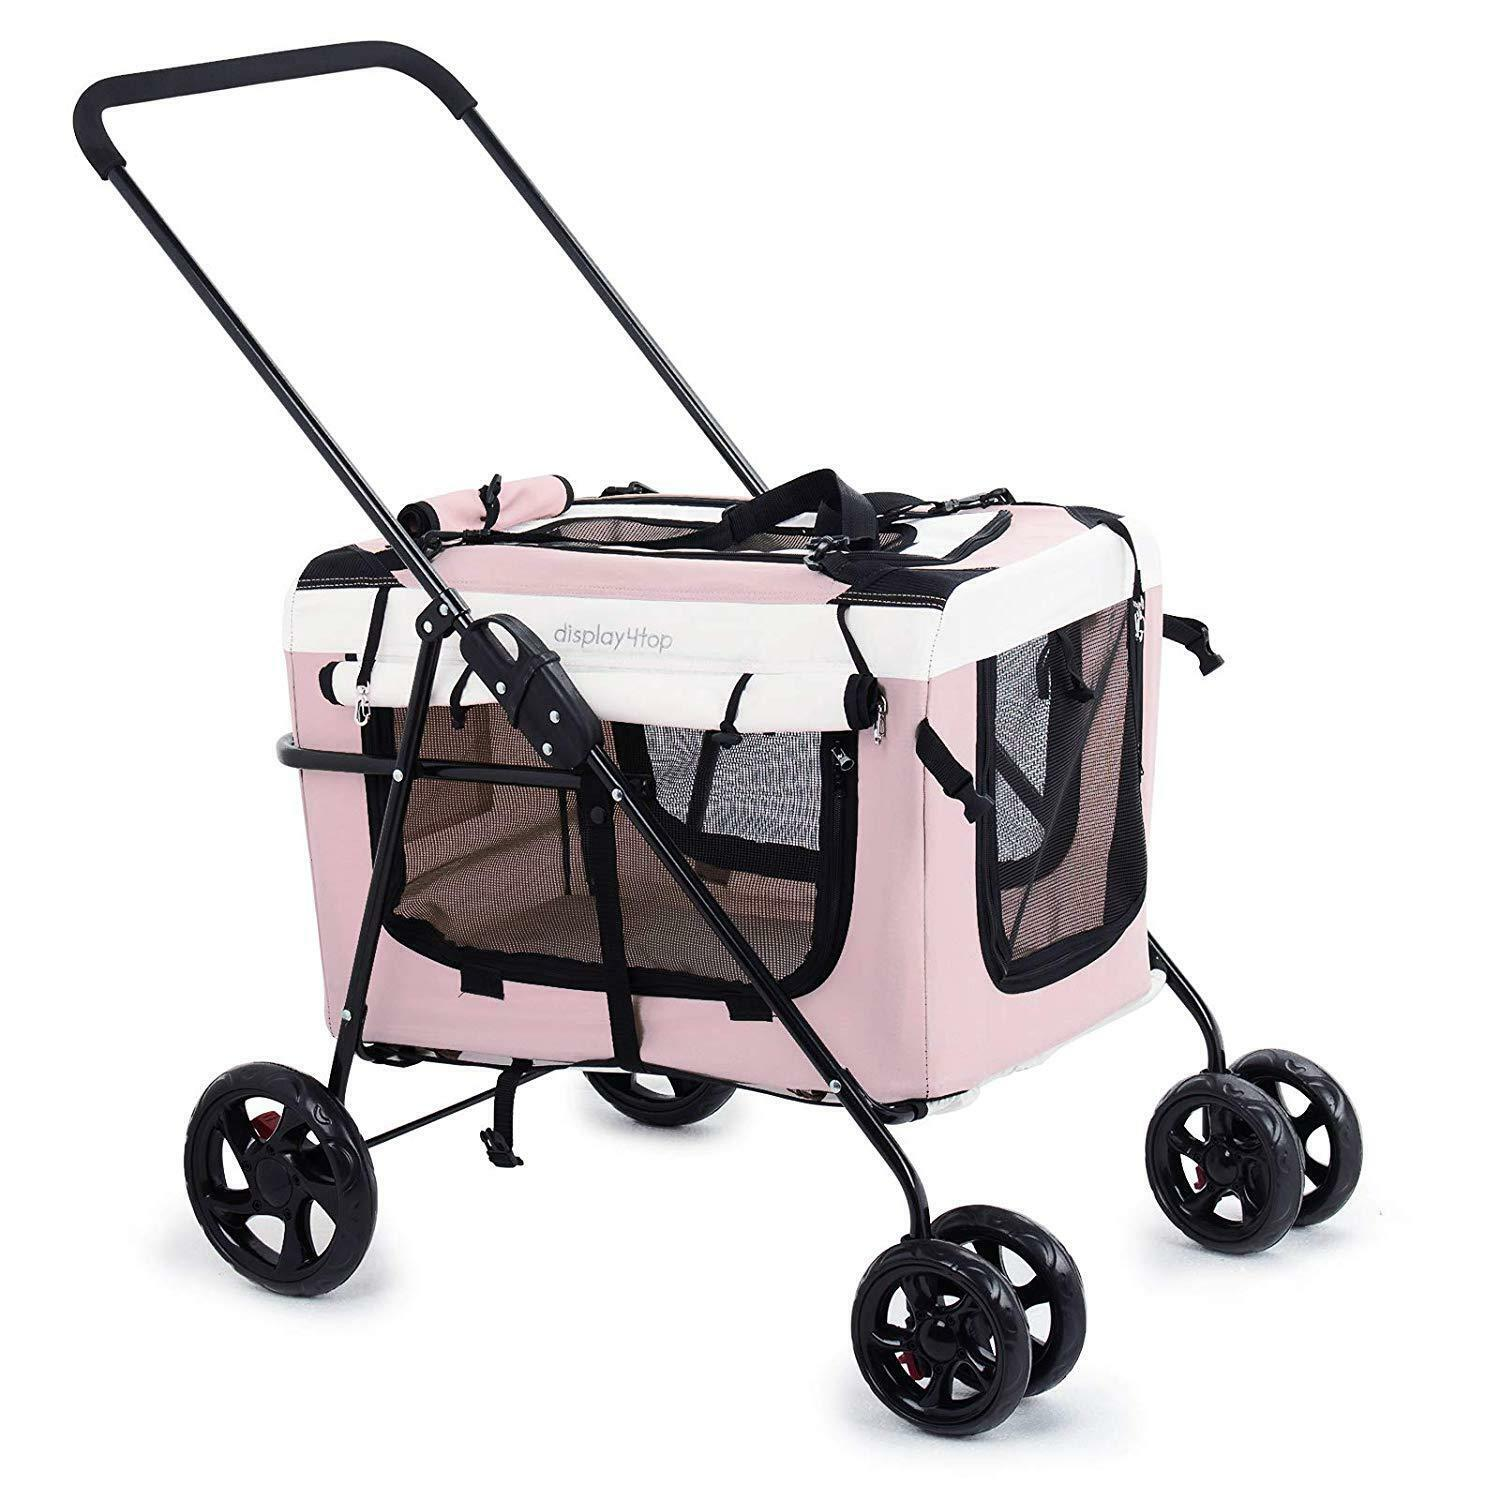 Travel Buggy With Sunroof Display4top Pet Travel Stroller Dog Cat Pushchair Pram